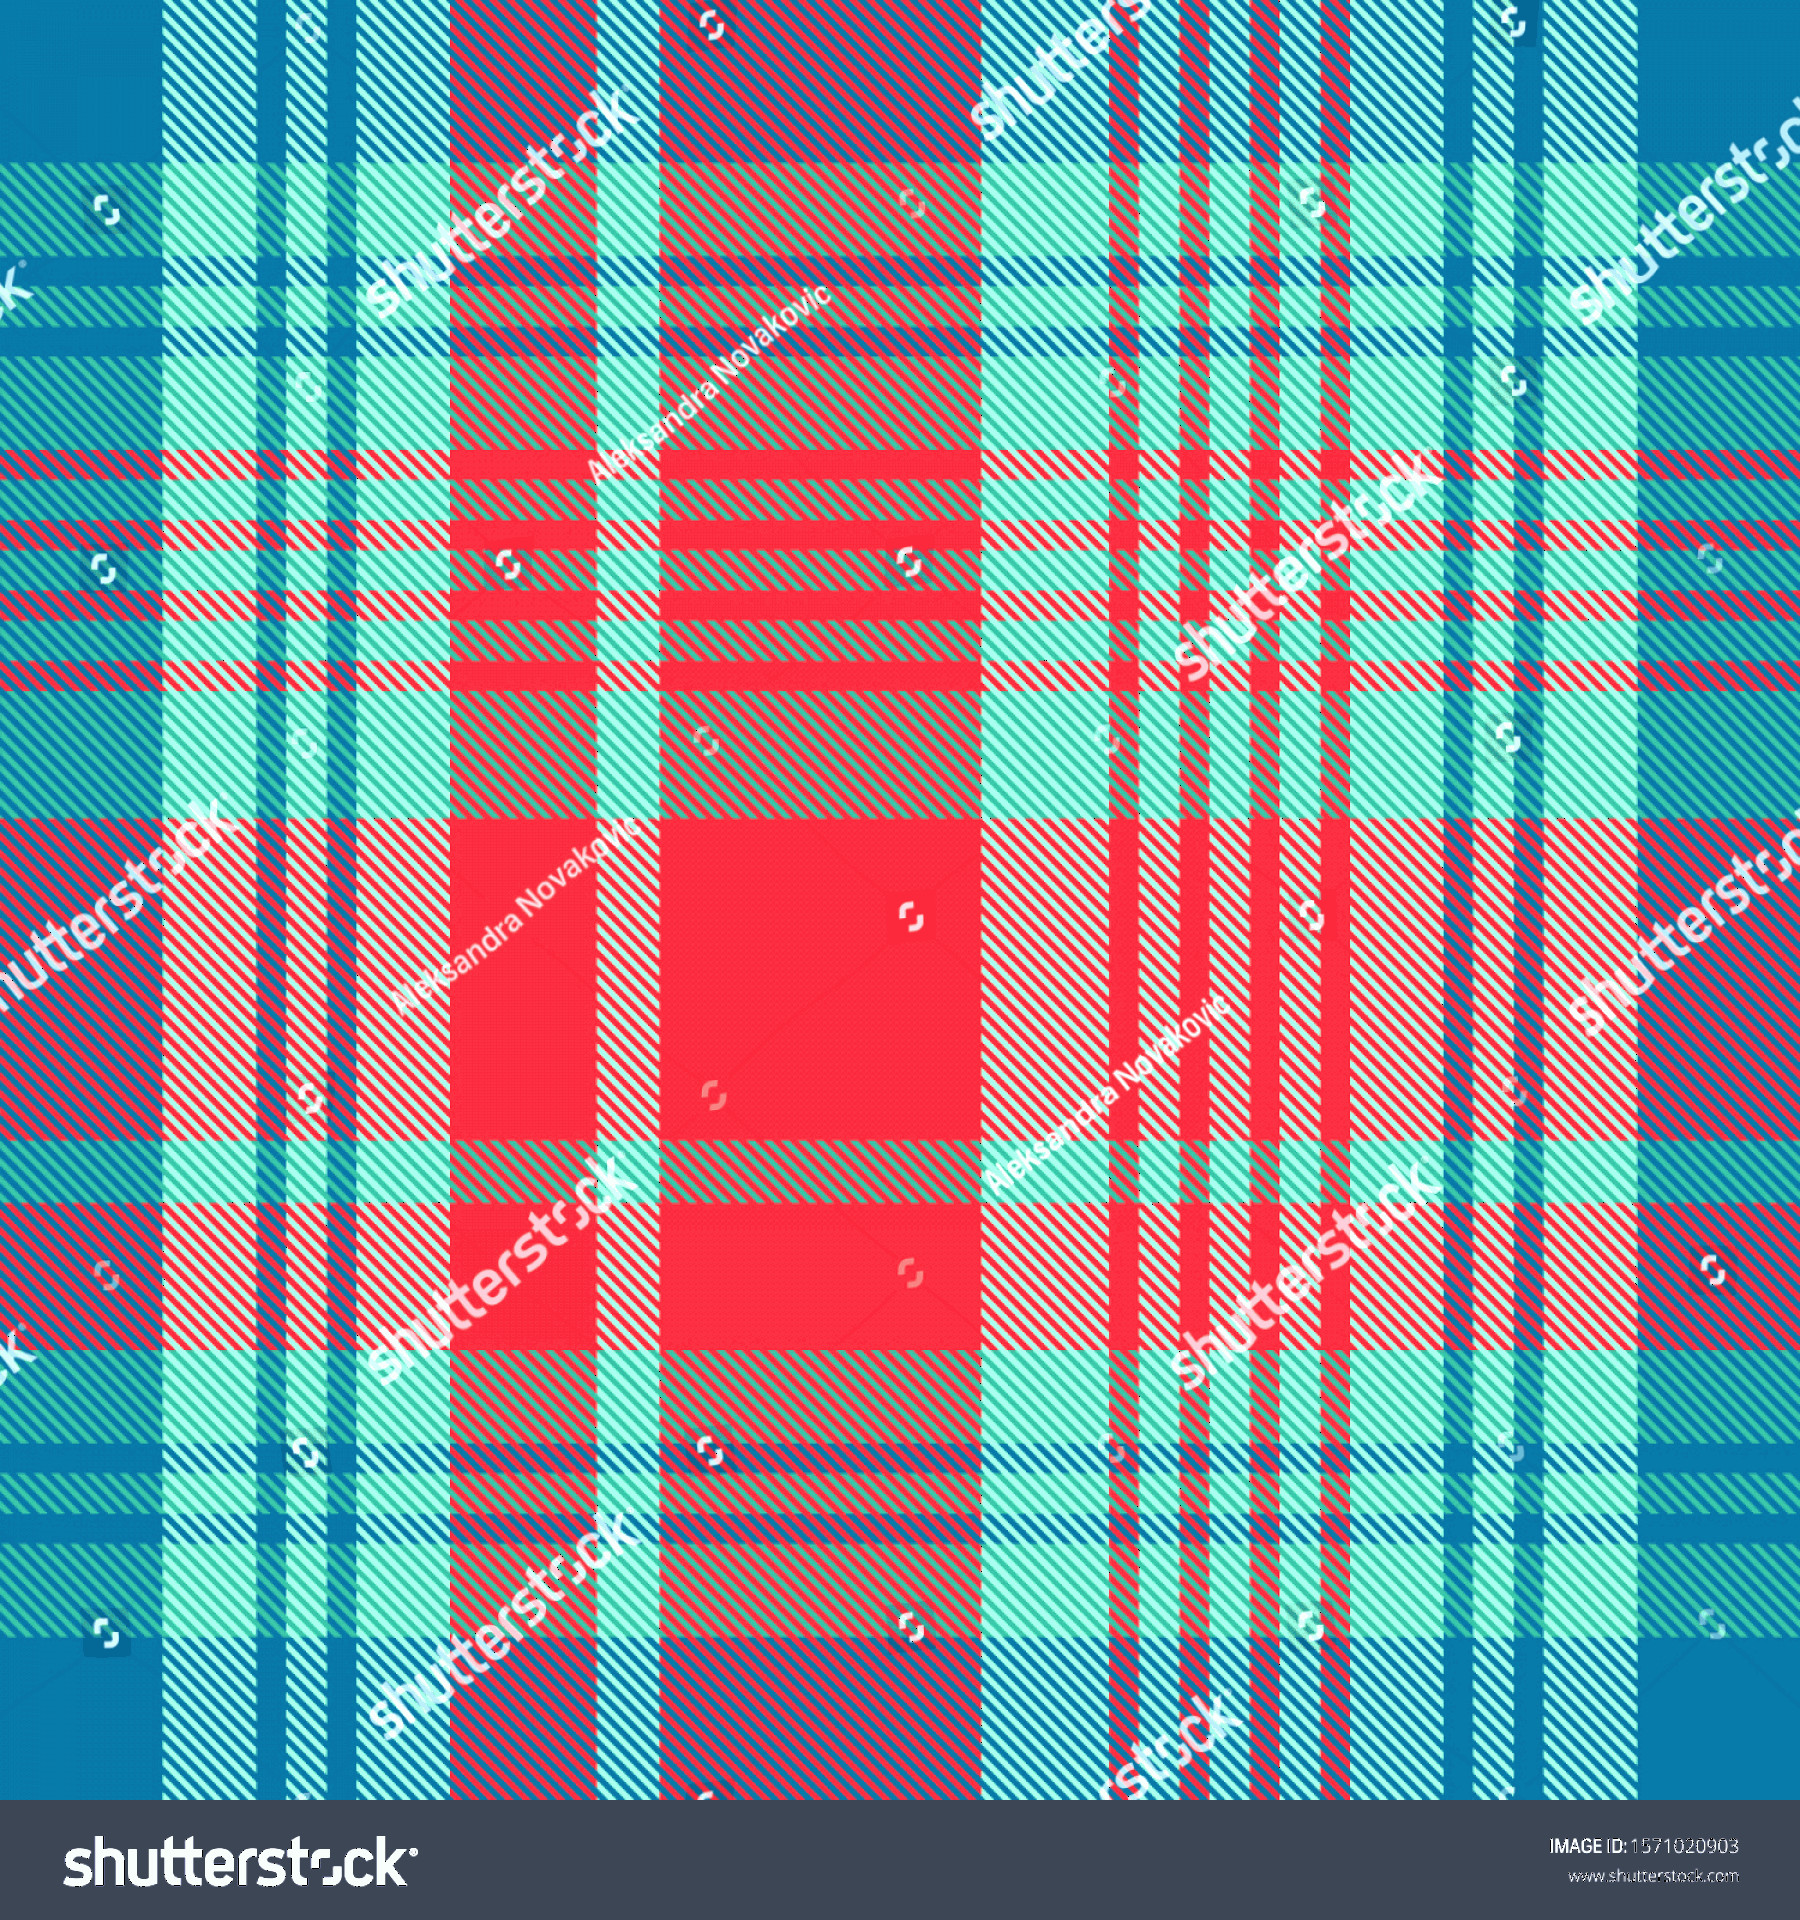 Plaid Vector: Plaid Vector Seamless Pattern Background